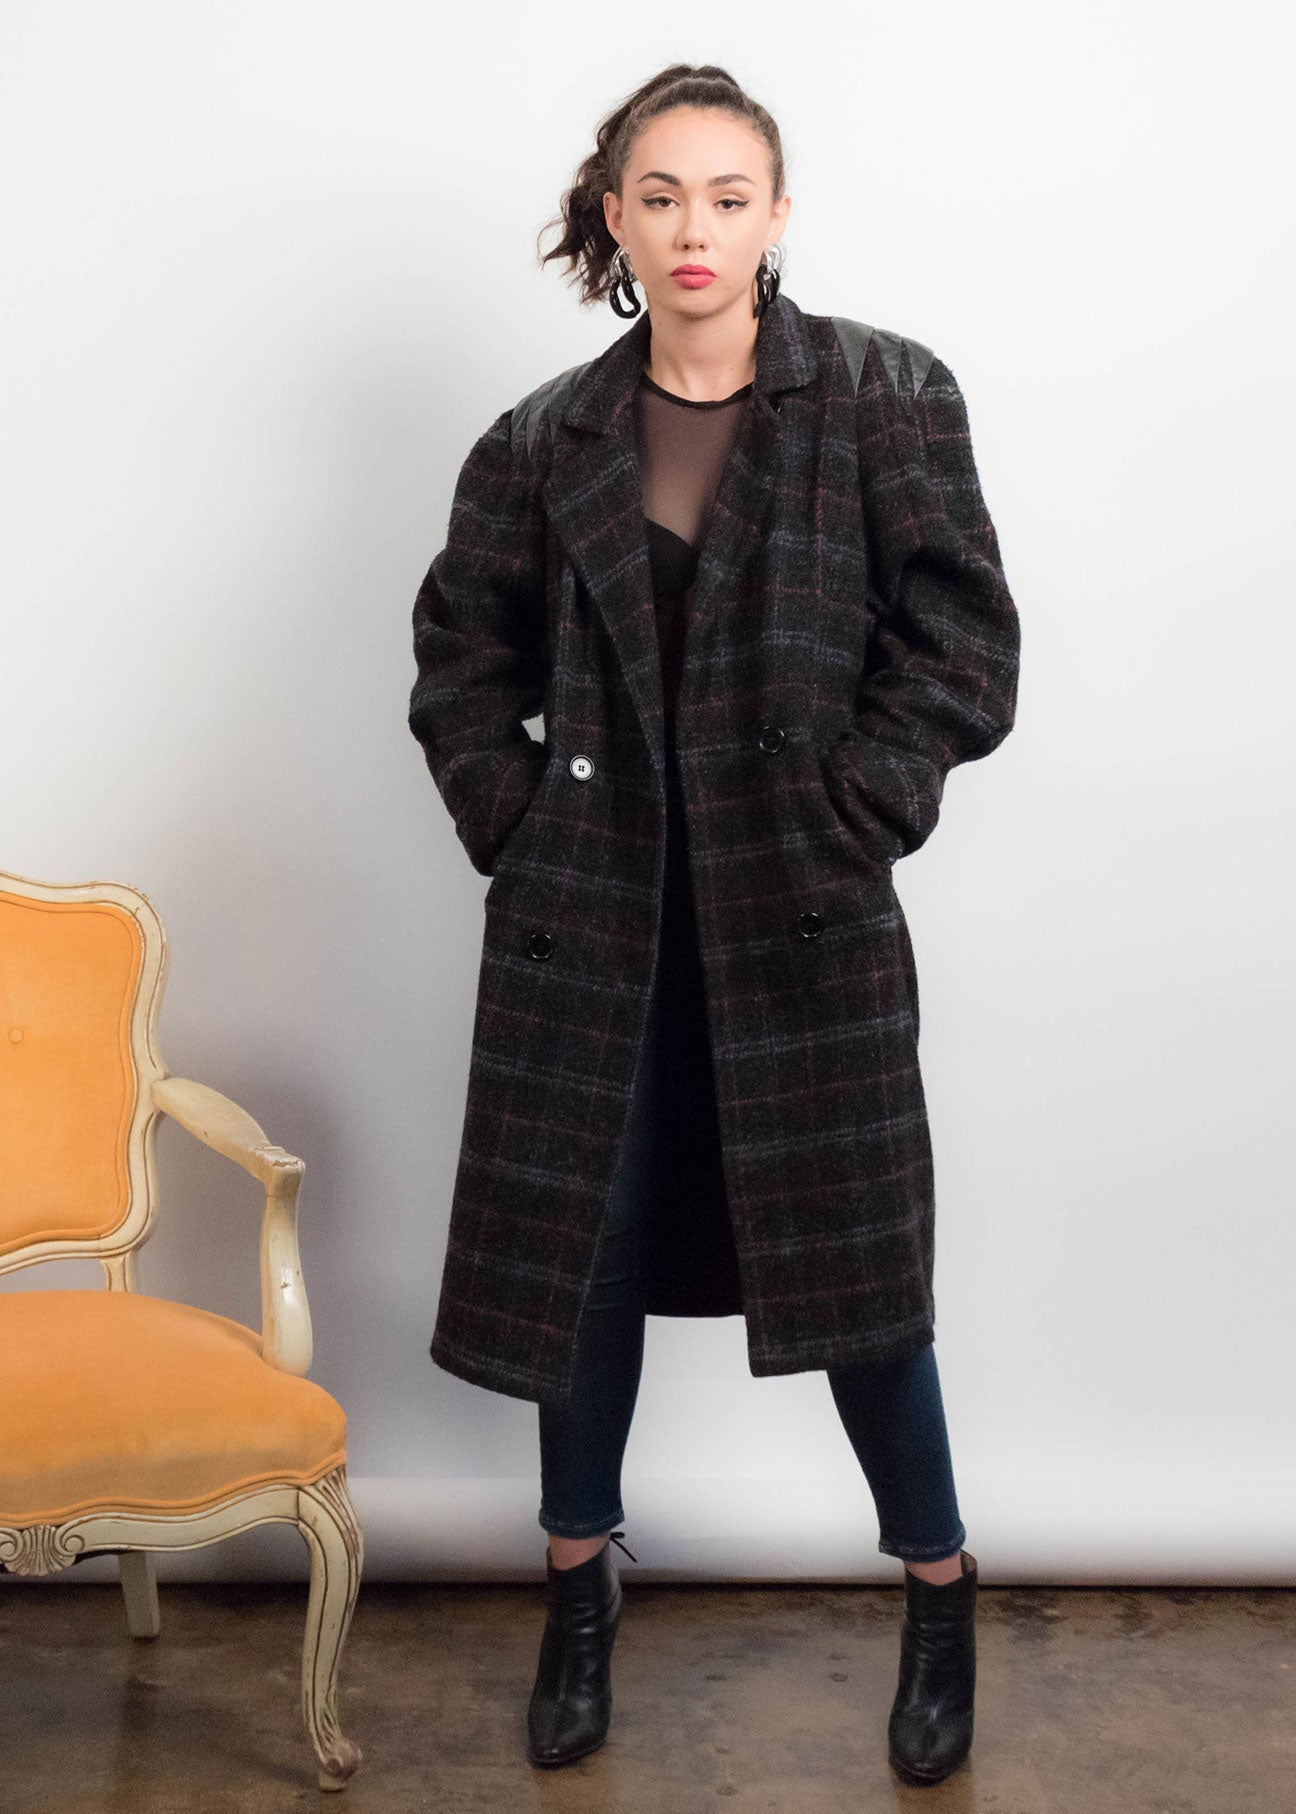 80s Box Plaid Wool Coat